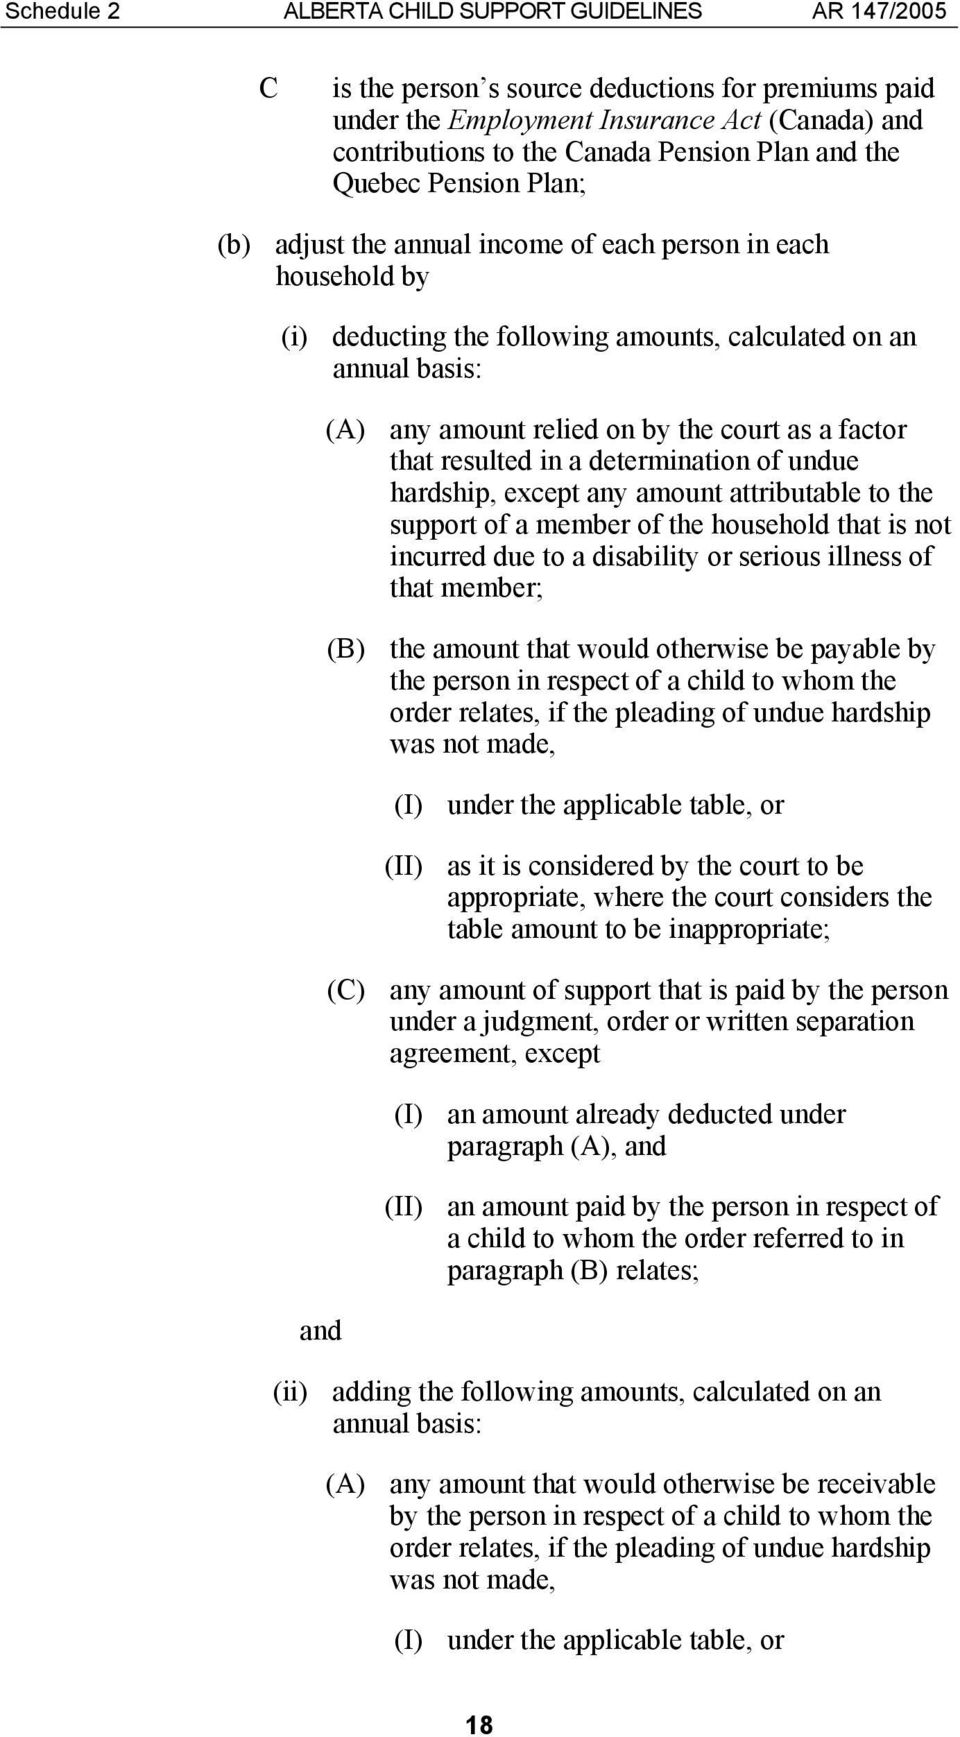 court as a factor that resulted in a determination of undue hardship, except any amount attributable to the support of a member of the household that is not incurred due to a disability or serious